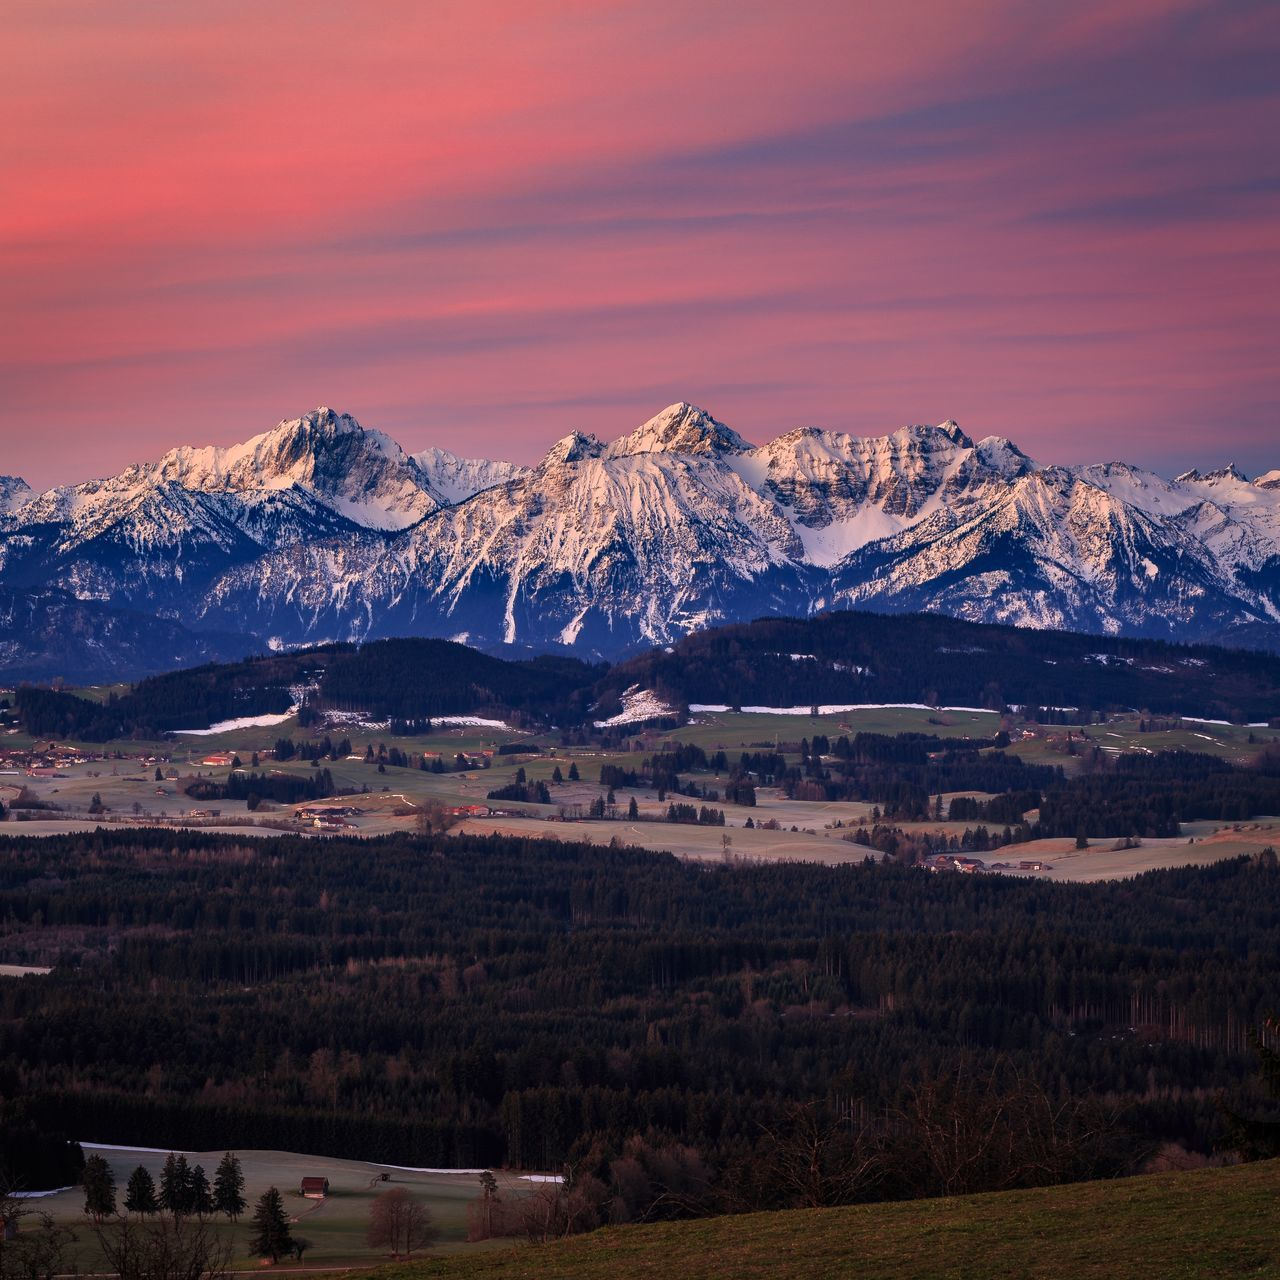 Allgäu Alps Bavaria Early Morning Germany Glowing Landscape Mountains Spring Sunrise Tranquility View